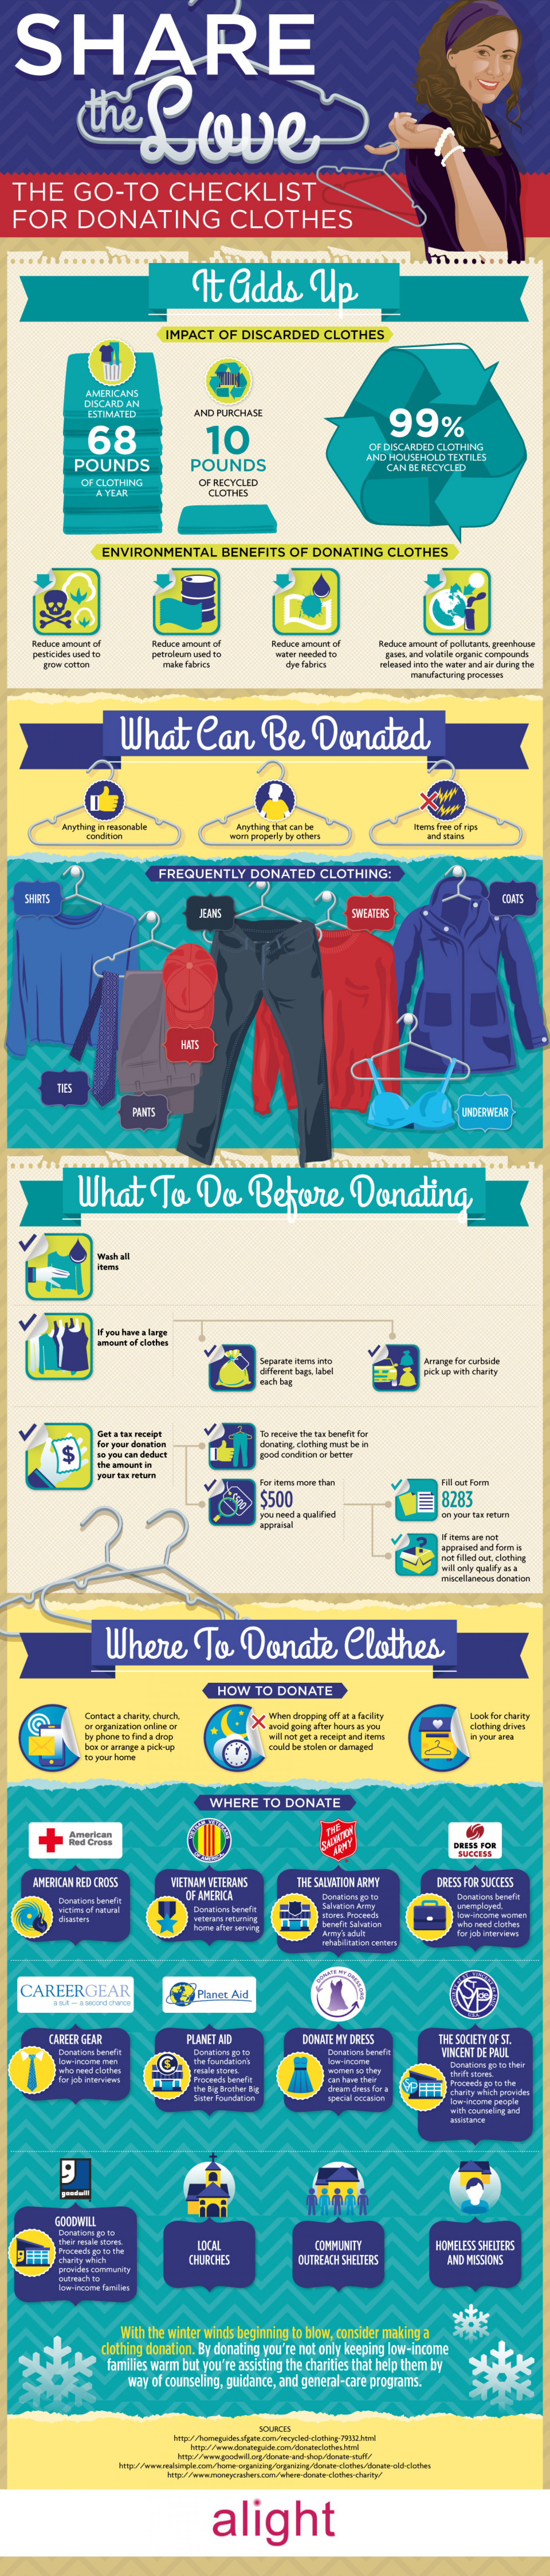 Share the Love: The Go-To Checklist for Donating Clothes Infographic